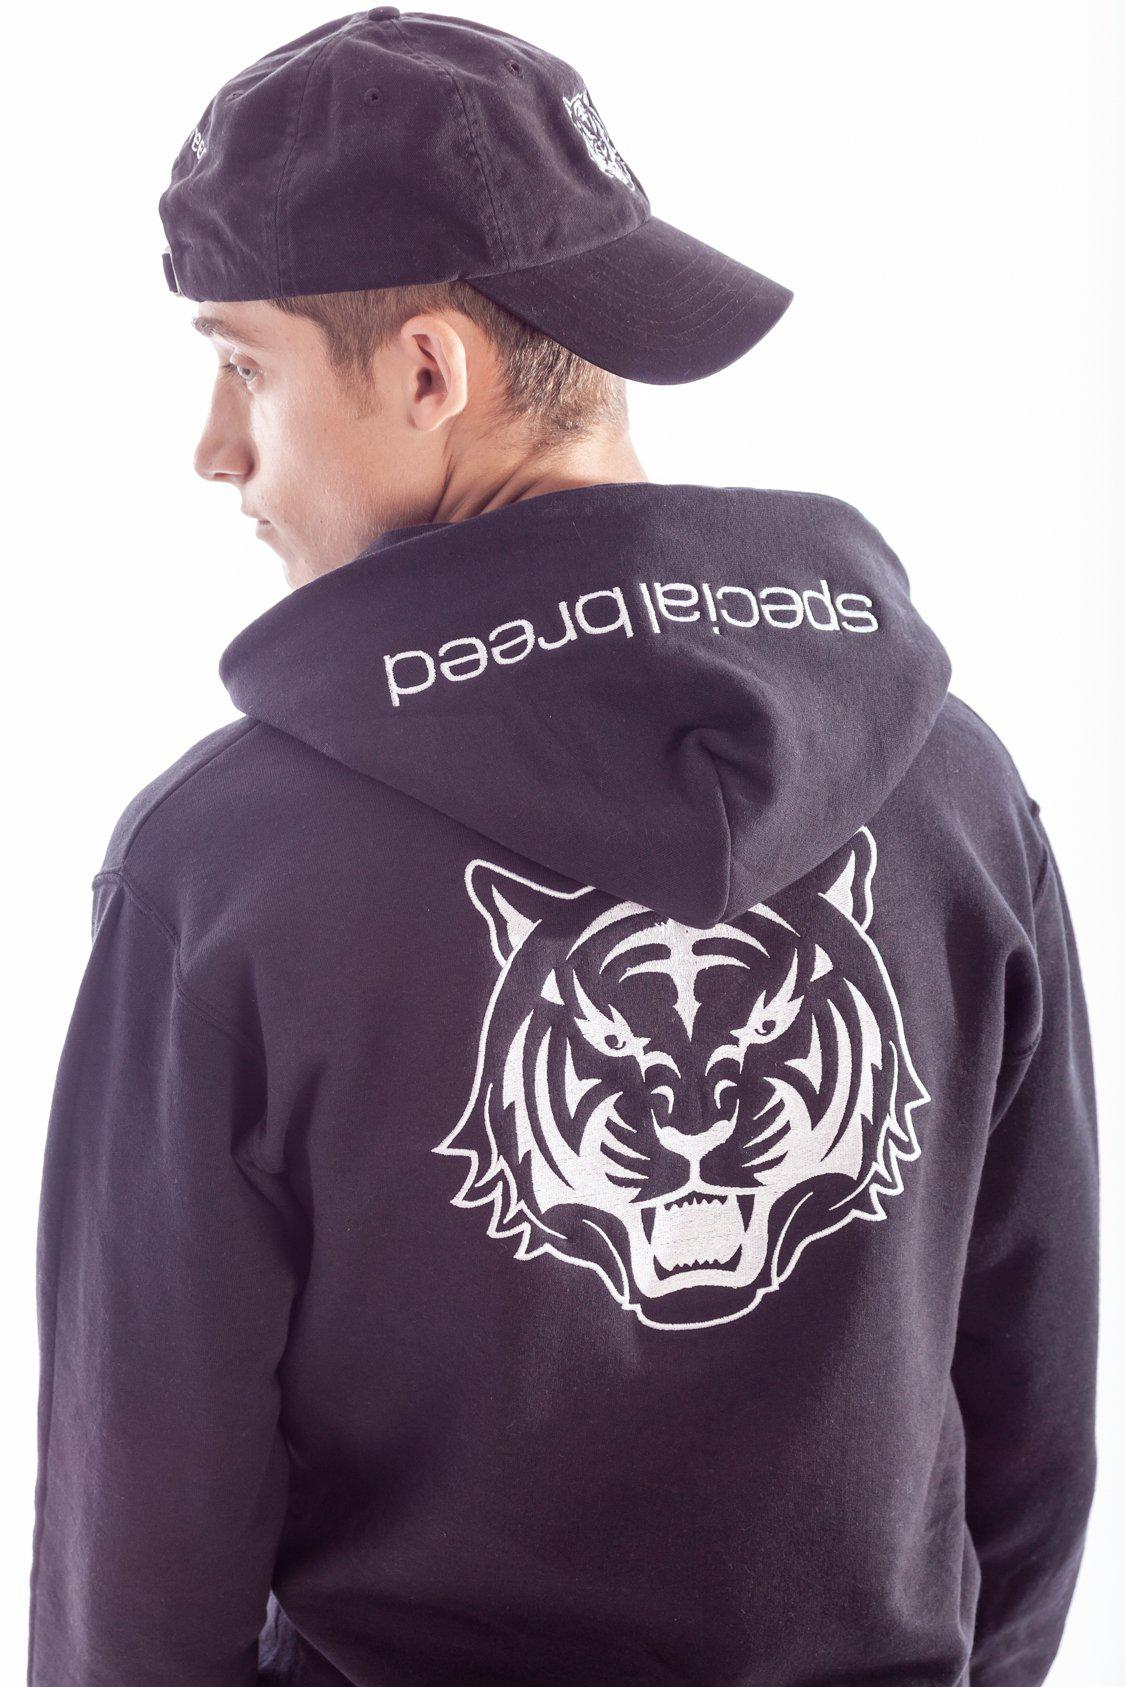 Black Hoodie with White Logo - specialbreed